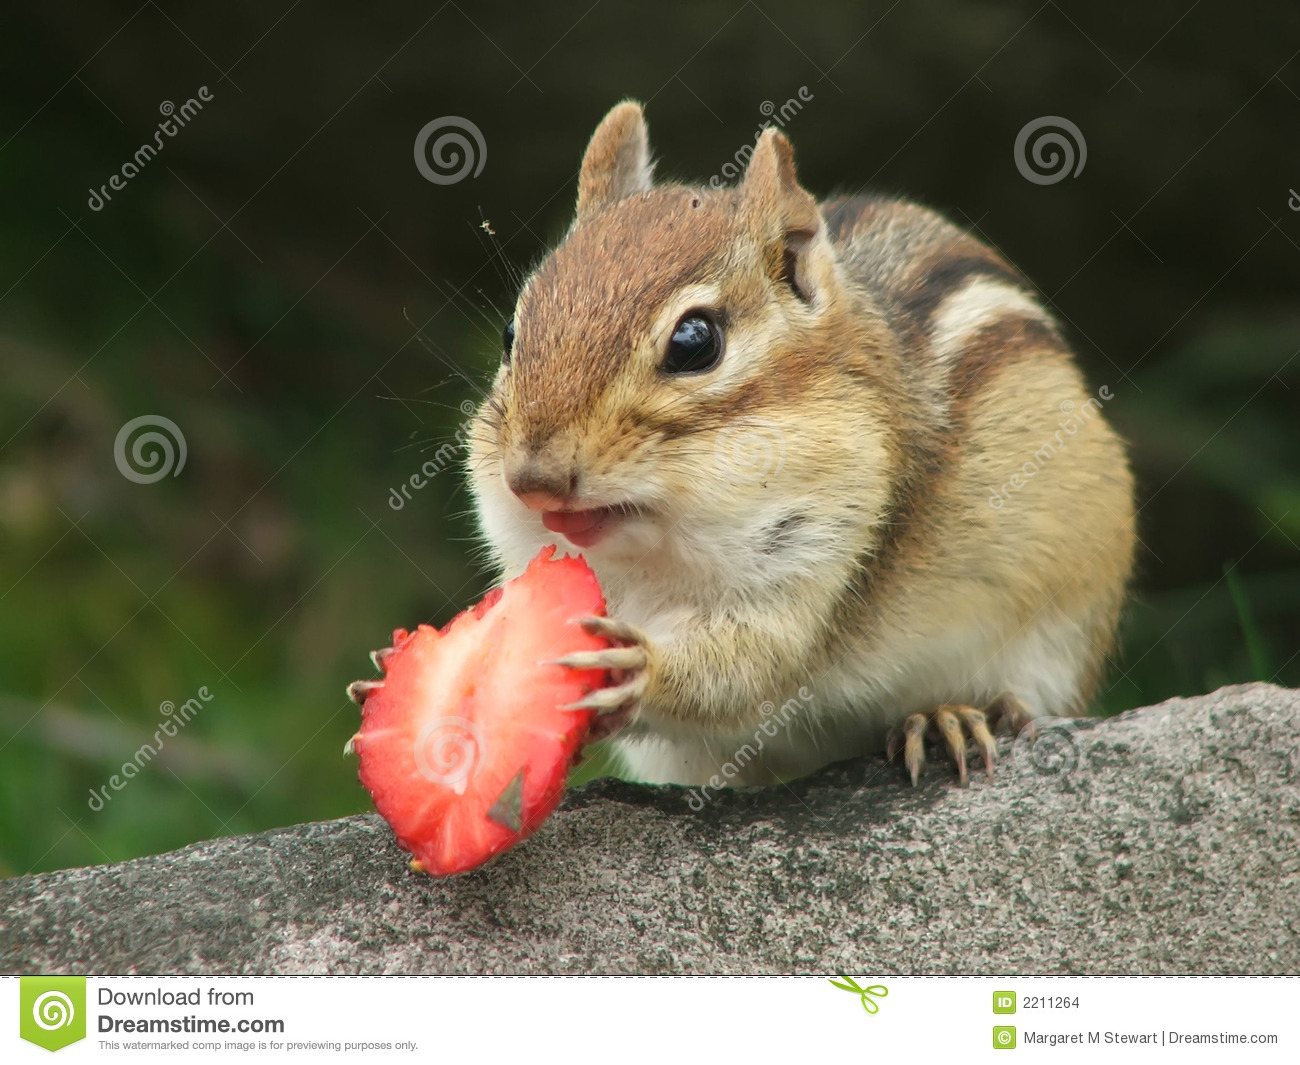 Cartoon Cute Couple Wallpaper Chipmunk With Strawberry Stock Images Image 2211264